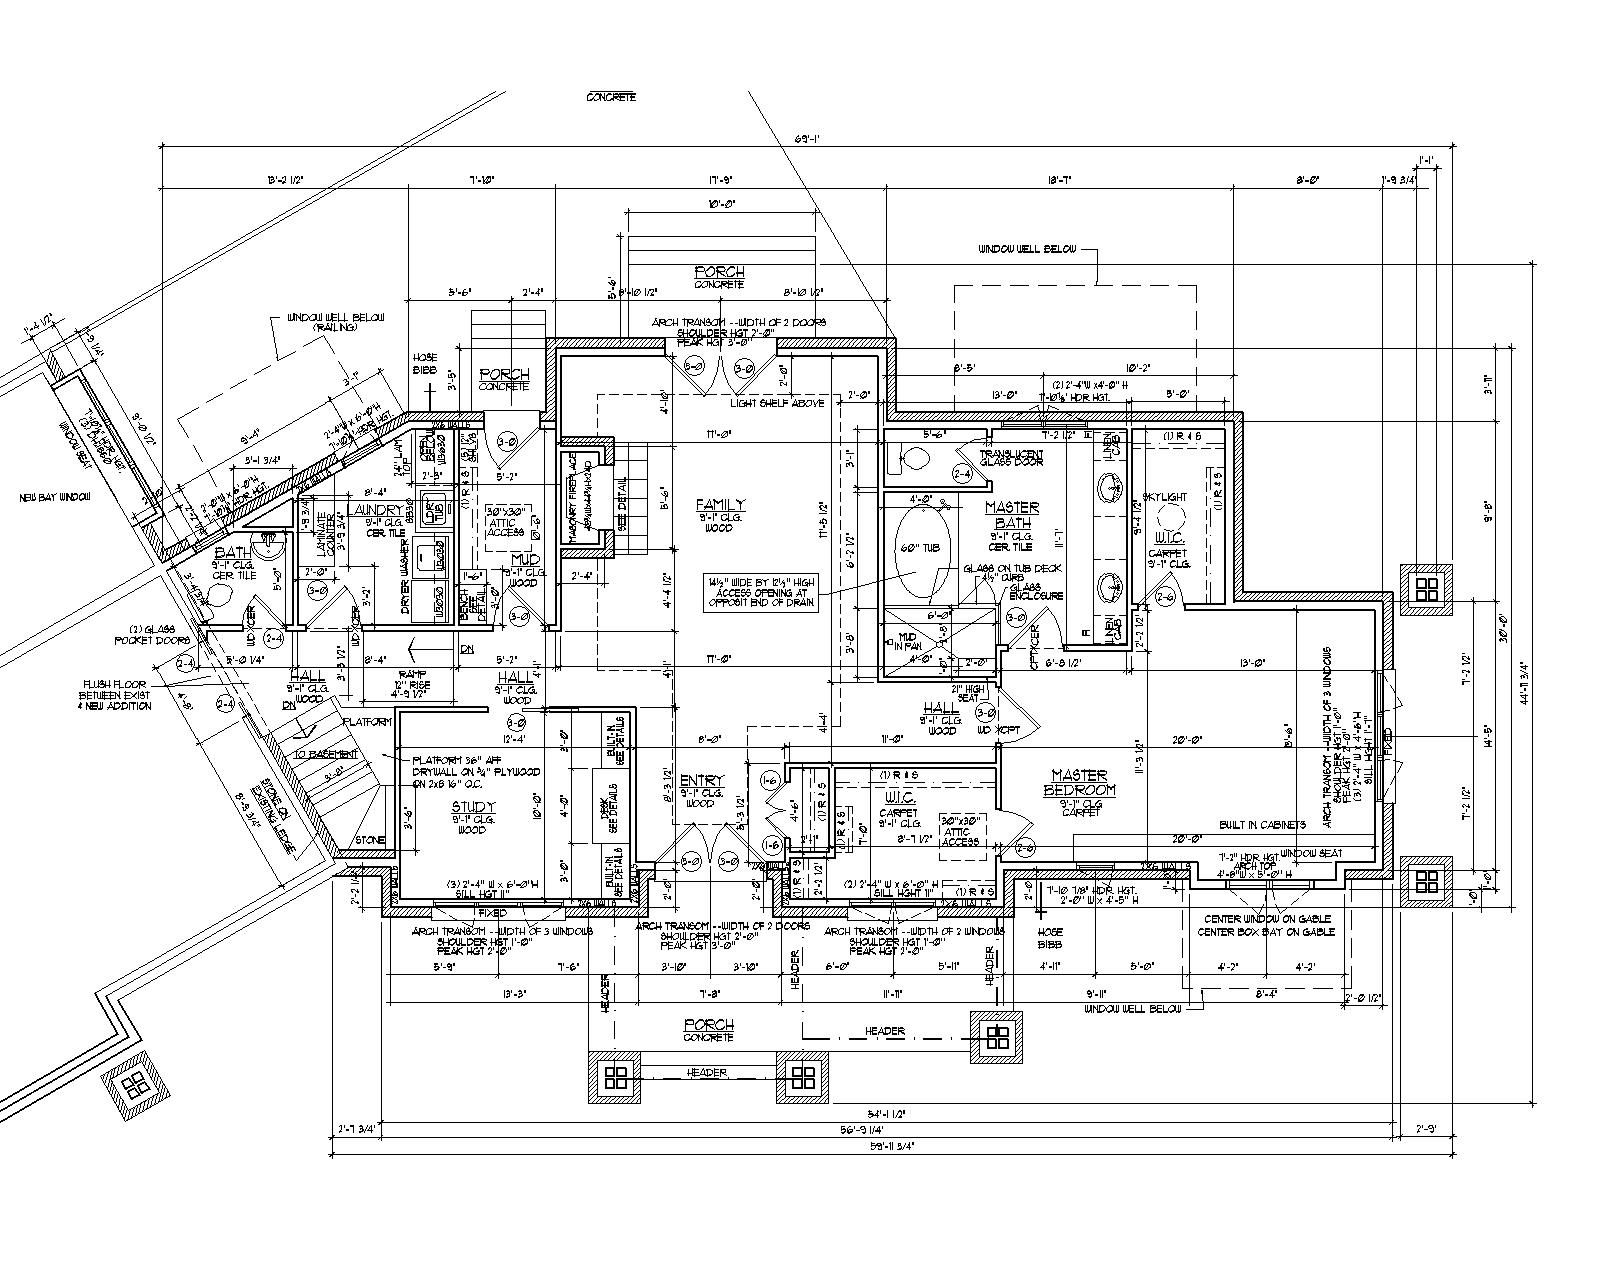 Architectural Drawings Online Of House Blueprint Architectural Plans Architect Drawings